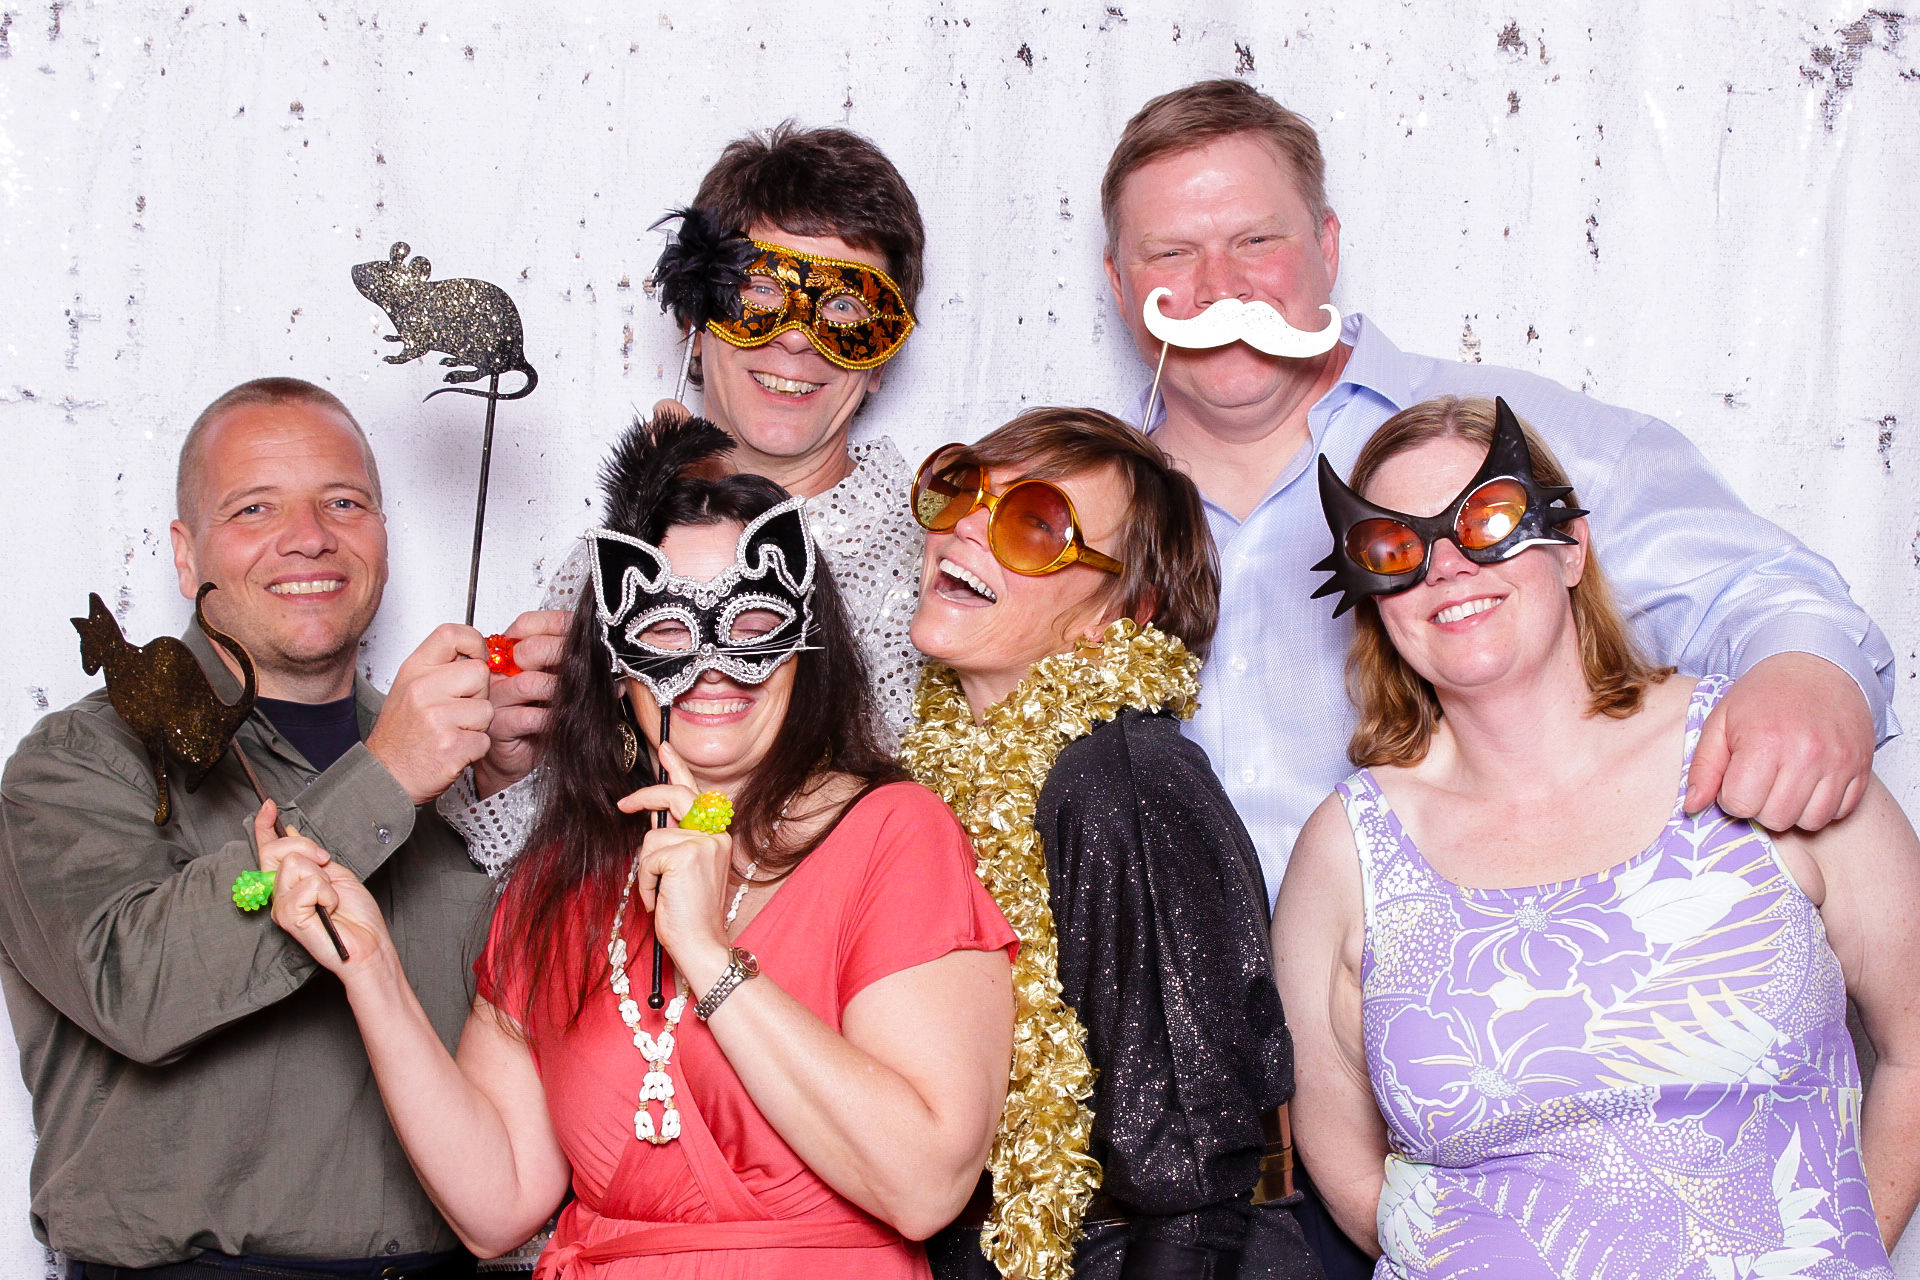 the-cats-meow-photo-booth-portland-oregon-feral-cat-alliance-furball-fundraiser-71.jpg